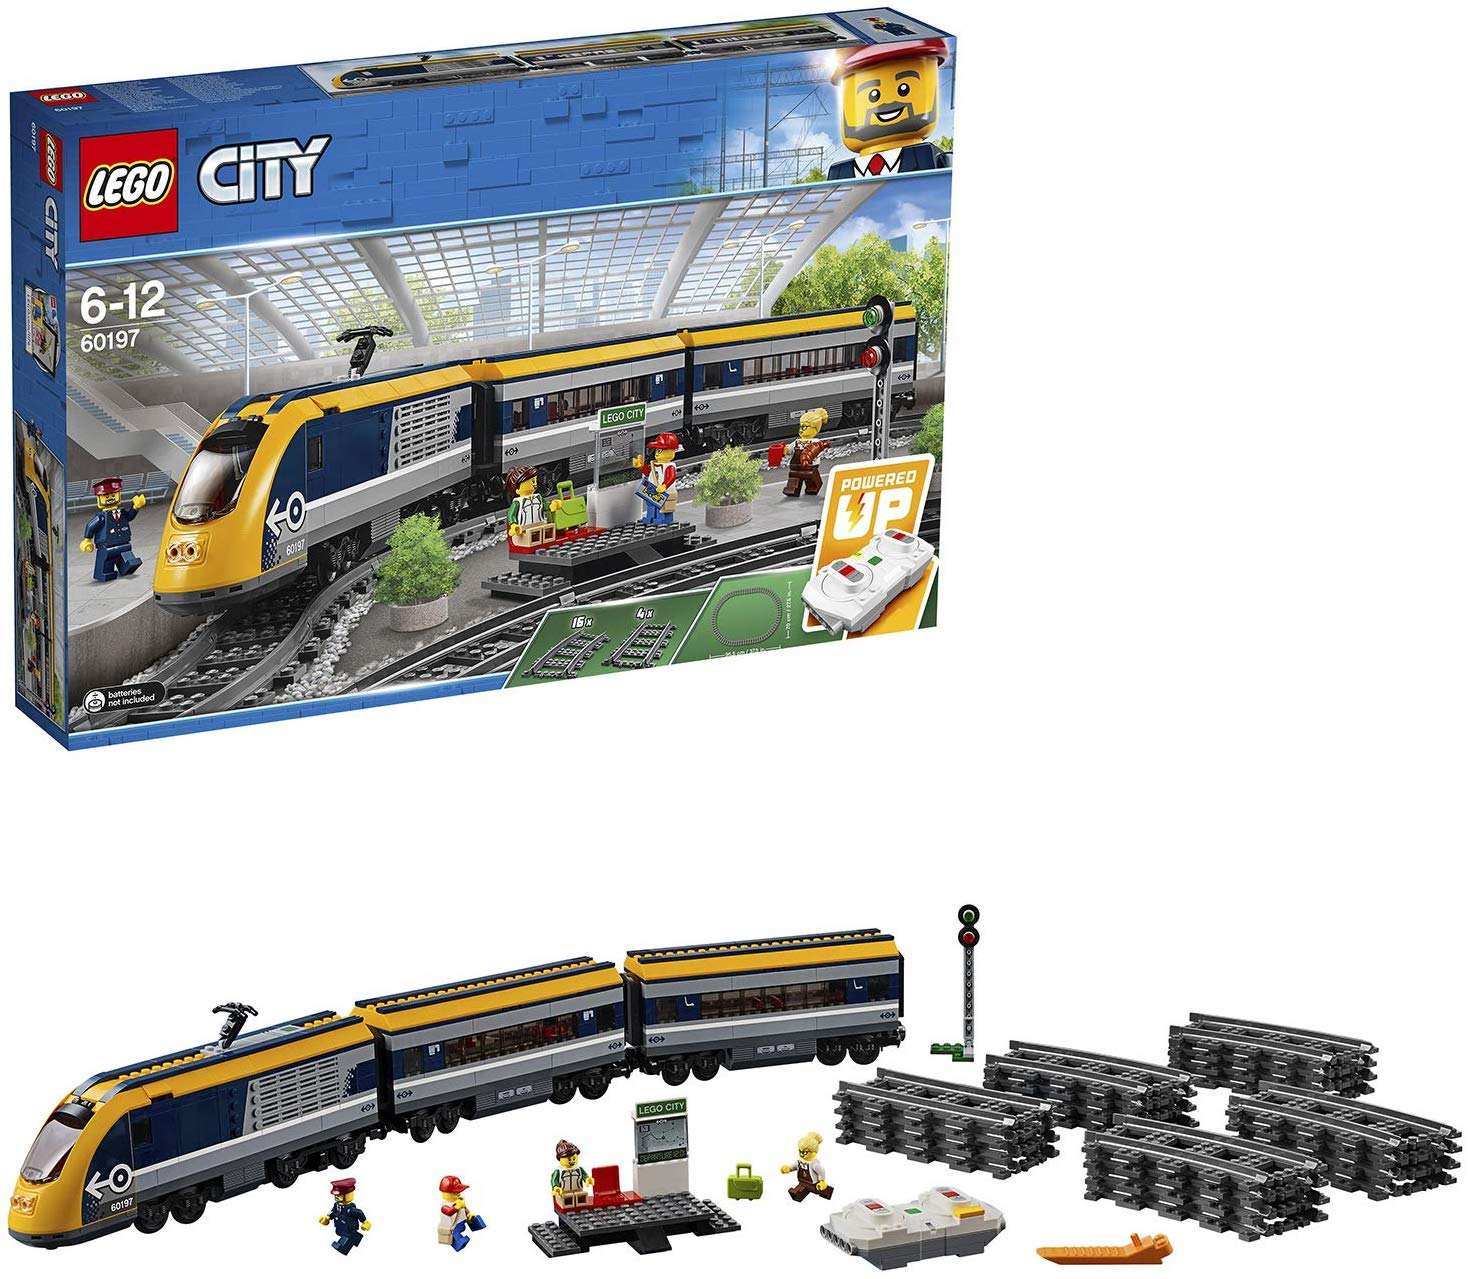 Save £47 on LEGO 60197 City Trains Passenger Train Set